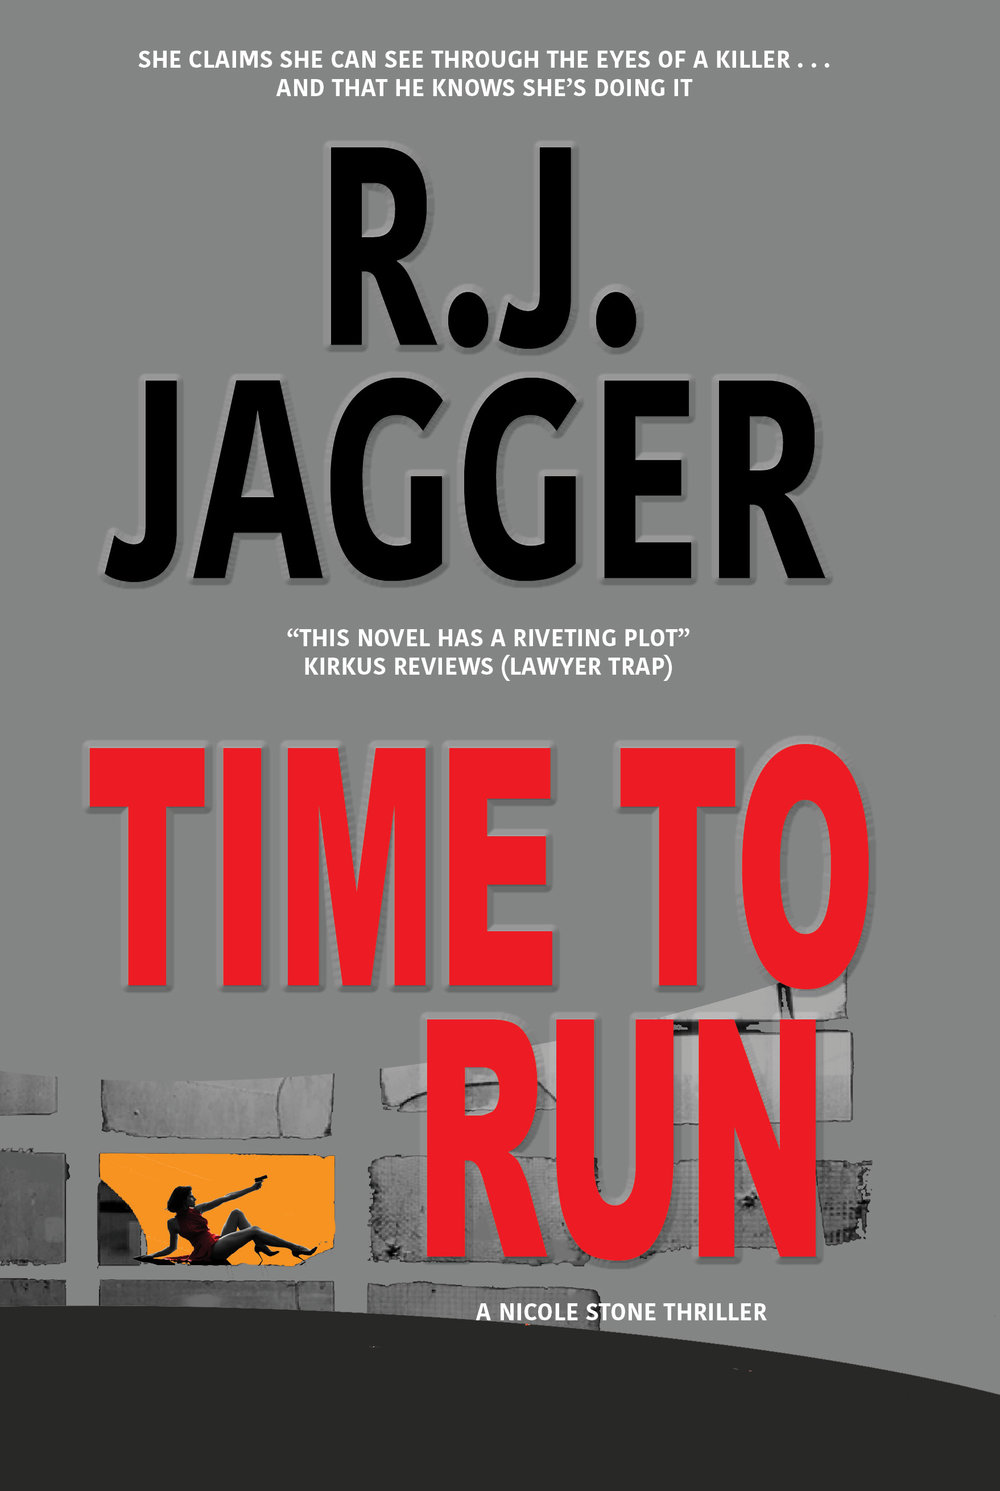 TIME TO RUN  - Coming Fall 2018 in Hardcover and ePub.Miami homicide detective Nicole Stone's newest case is as dangerous and threatening as it is frantic. An up-and-coming actress has been violently snatched from her bed and, if the taker's MO holds true, she'll be killed within the next few days. It soon becomes clear, however, that the woman may be more than just the next victim-to-be. She may also be the bait to draw in the next victim who will follow after her. Namely, Nicole herself.ISBN 9781937888367 (Hardcover edition)ISBN 9781937888374 (Paperback edition)ISBN 9781937888381 (Ebook edition)Distributed by Ingram.